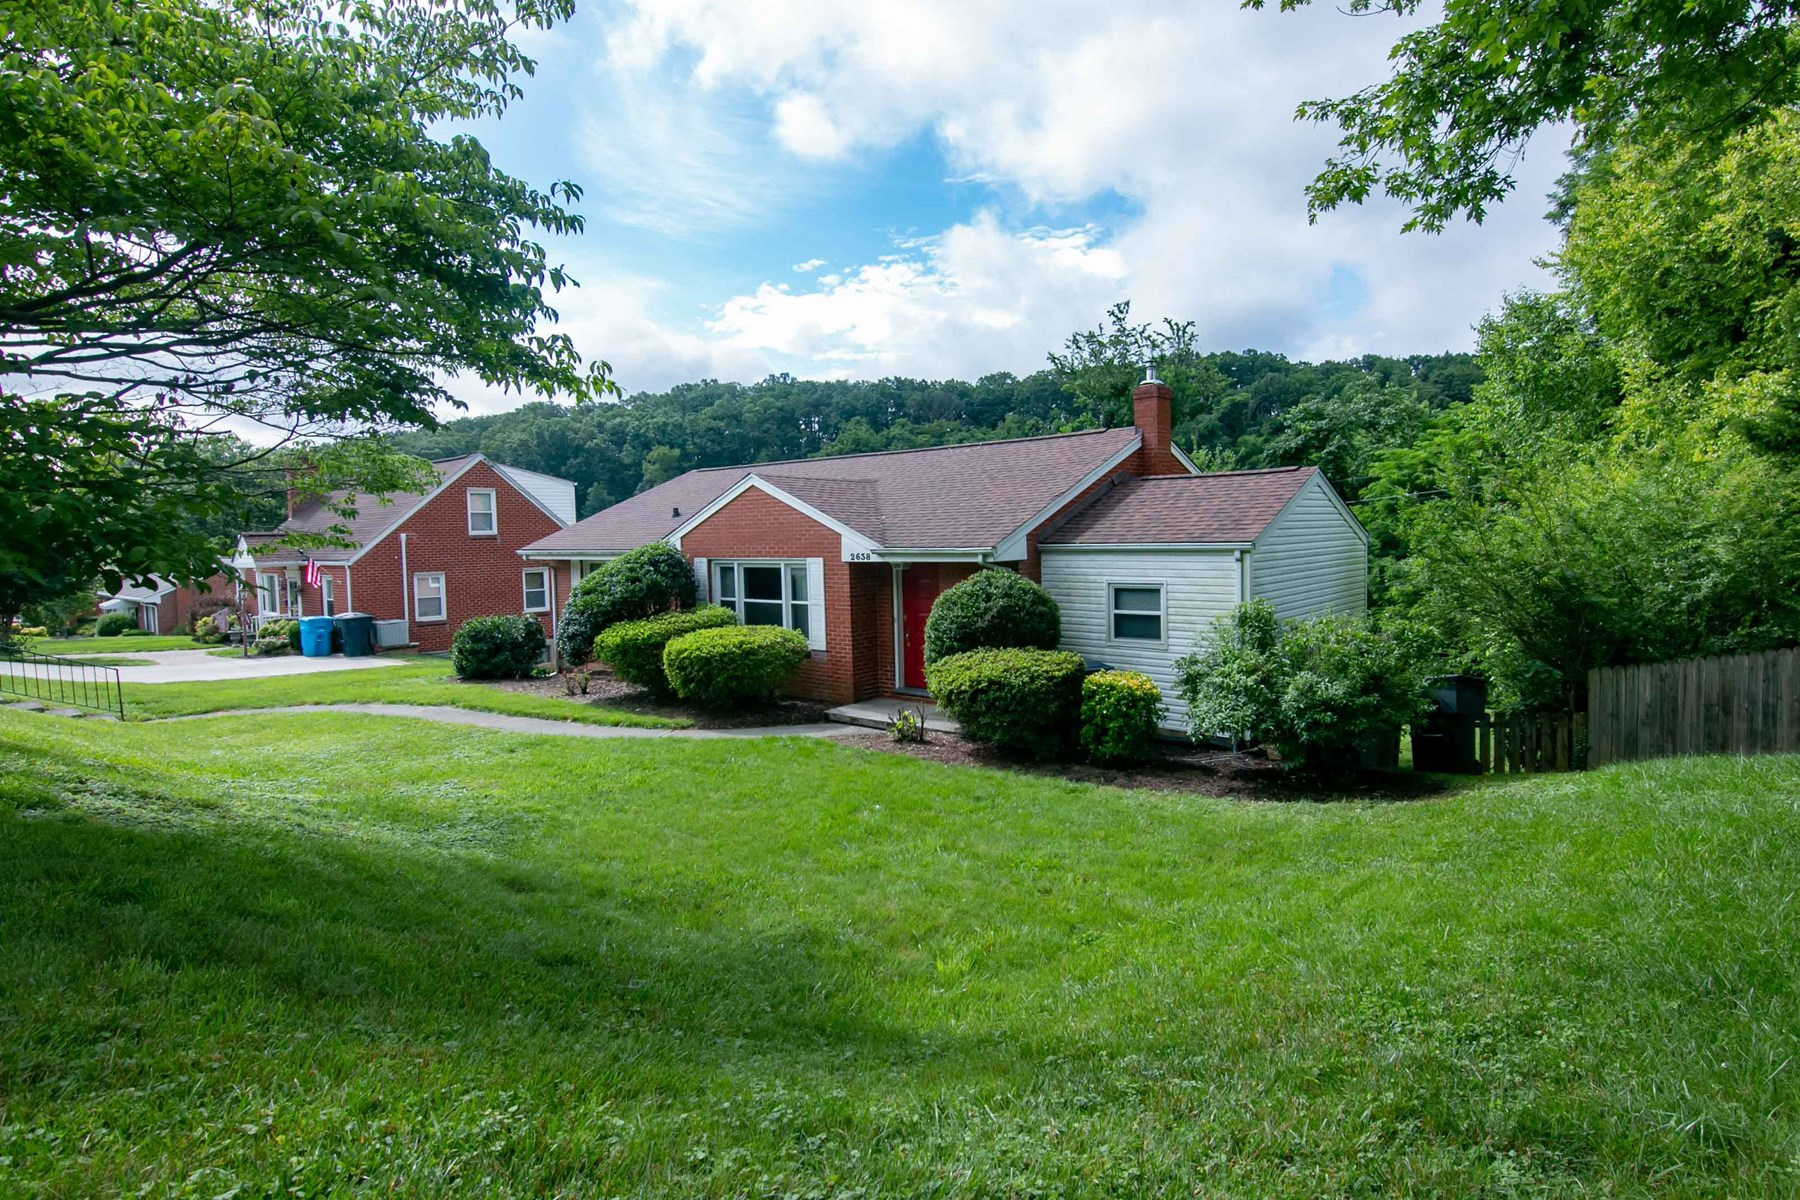 Home for Sale in Desirable Roanoke VA Neighborhood